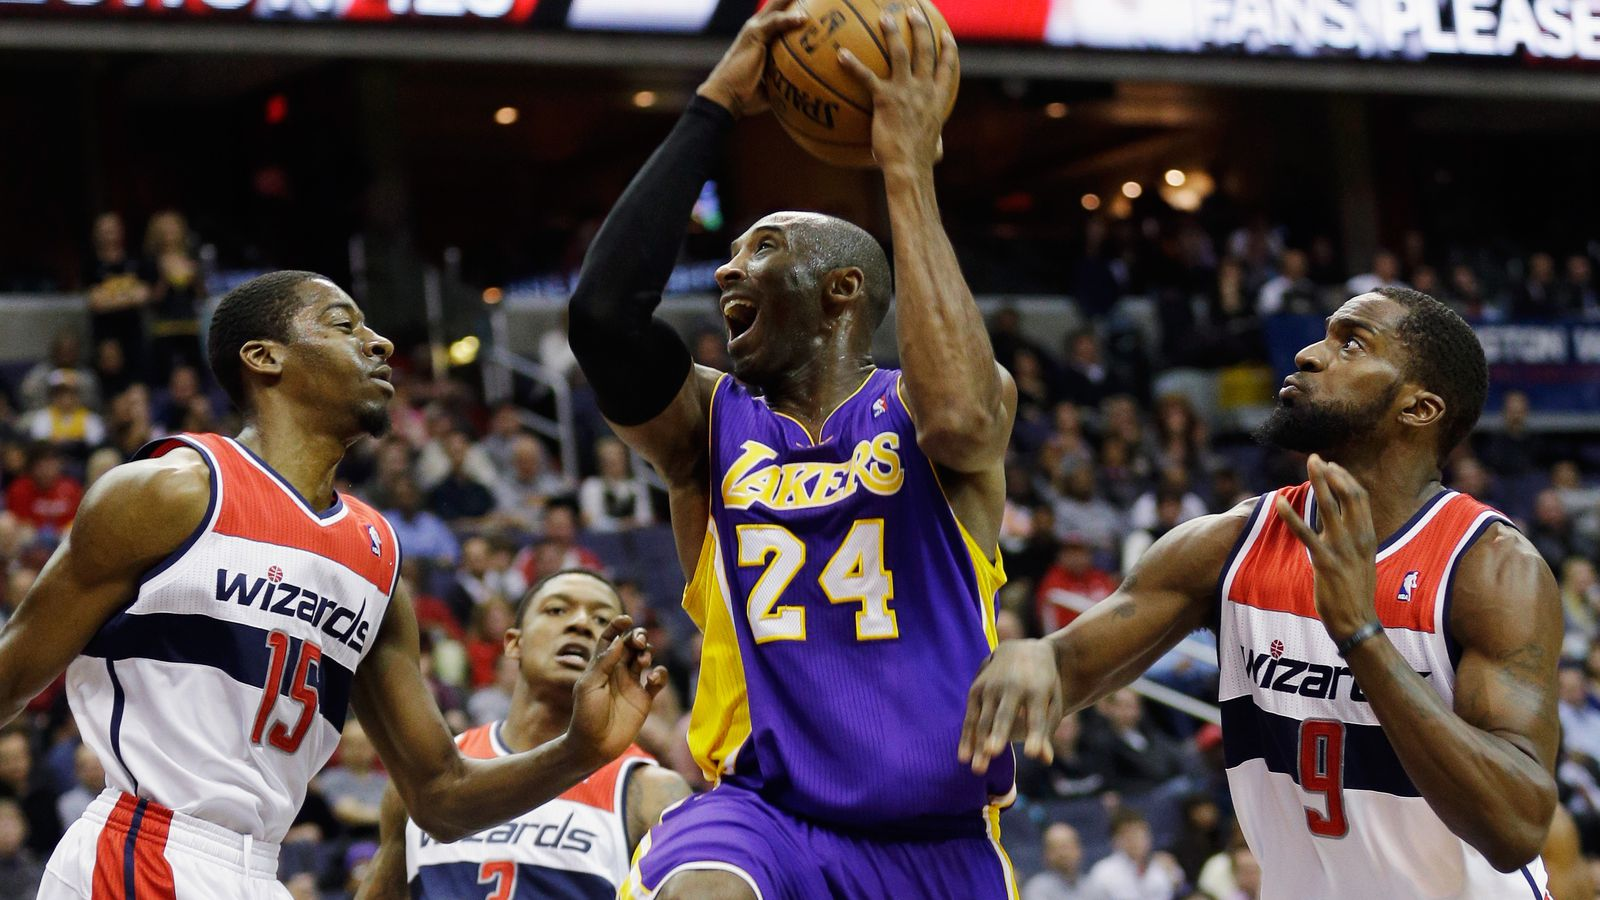 Wizards vs. Lakers: A close first half, but L.A. pulls ...